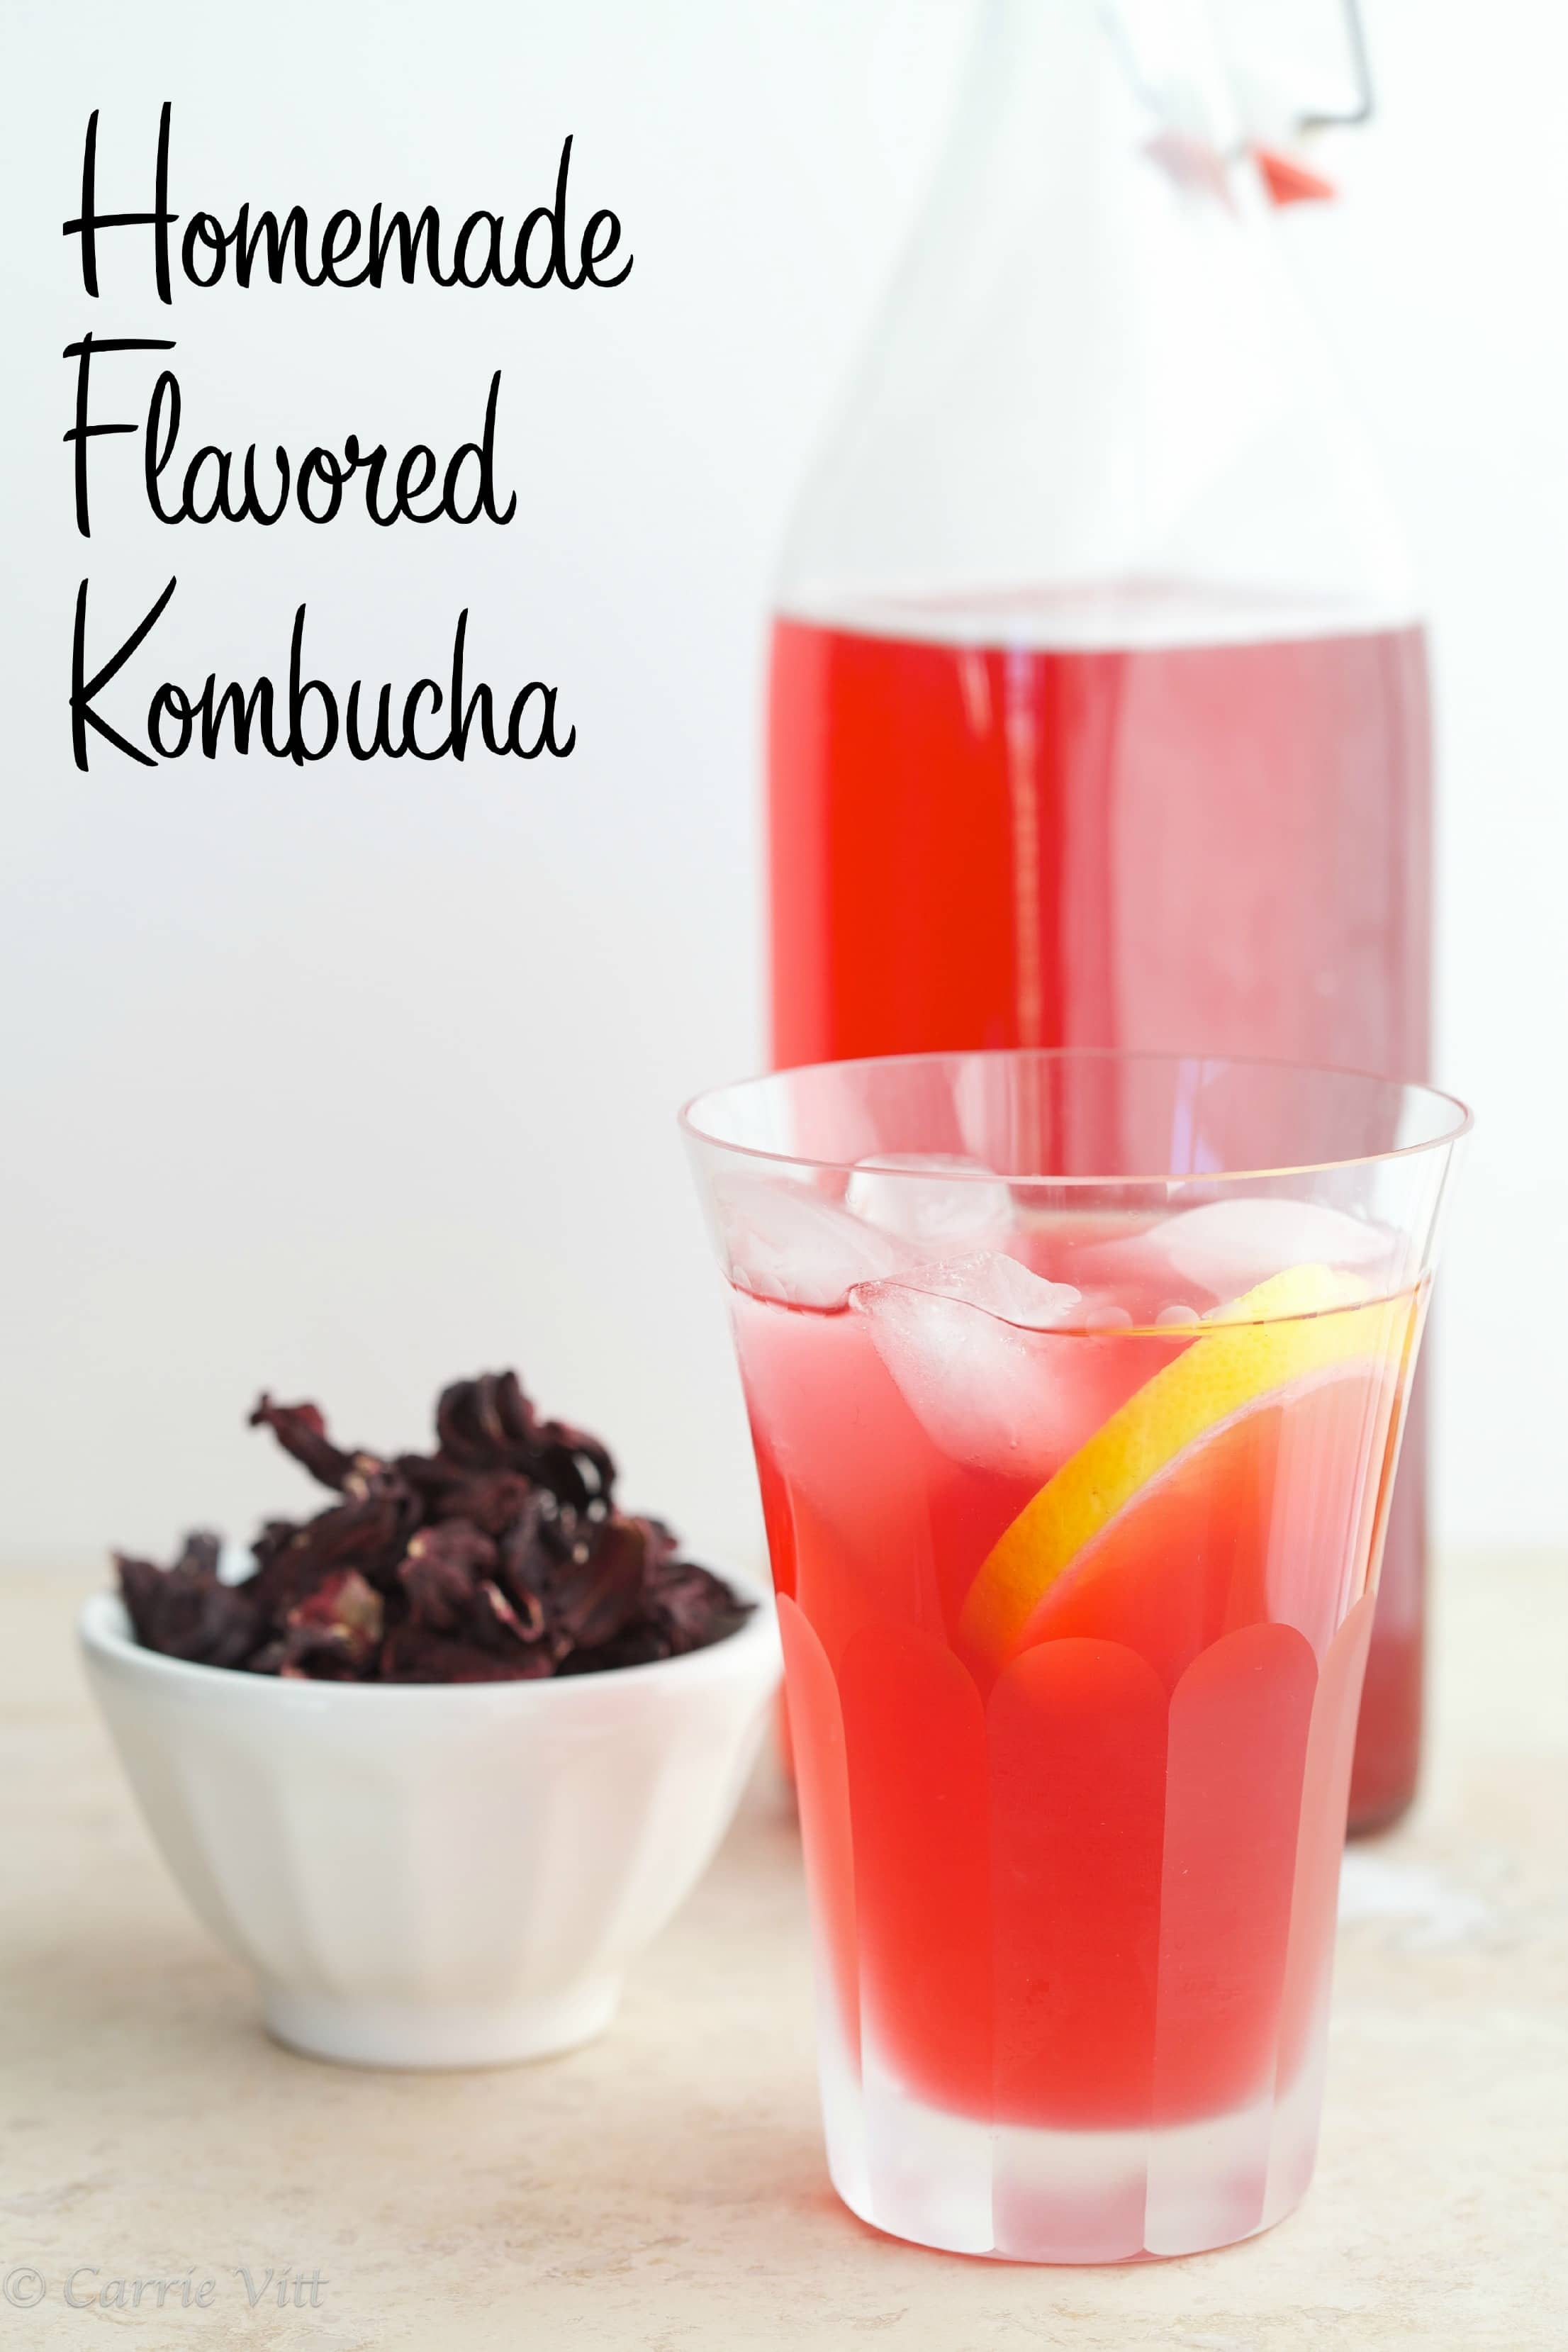 Homemade Flavored Kombucha